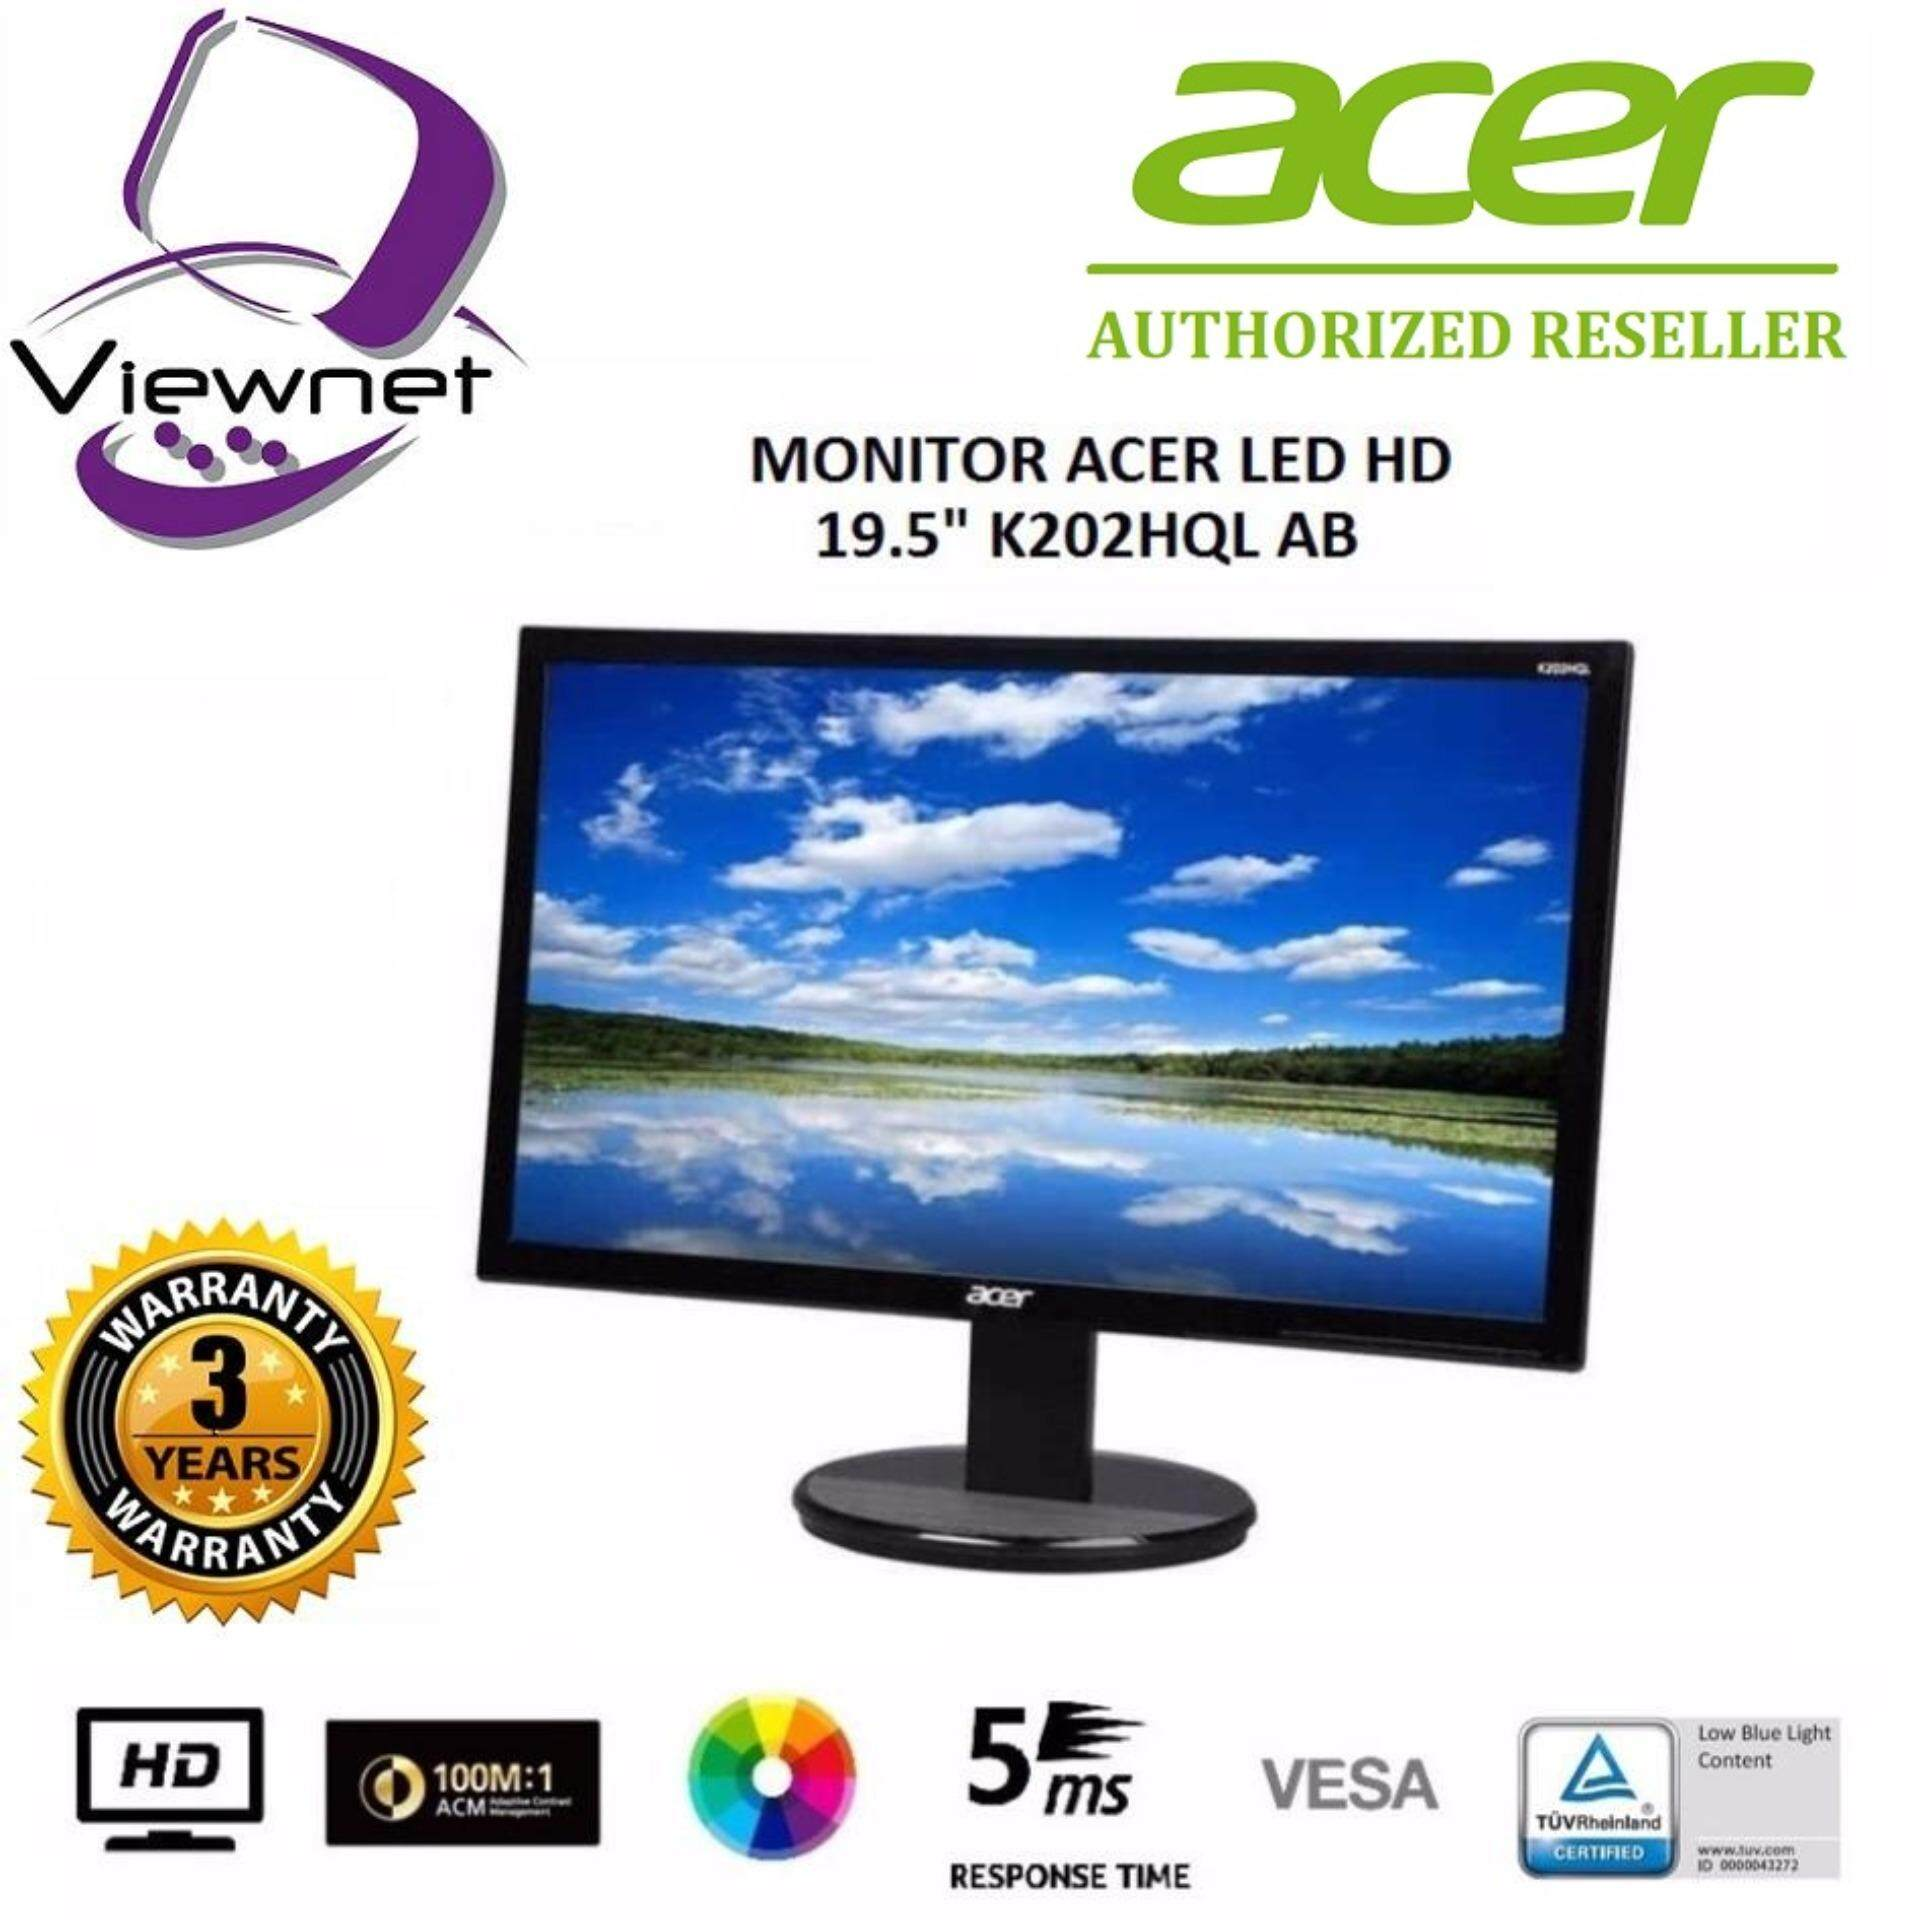 GENUINE ACER LED FLAT HD 19.5 ENVIRONMENT-FRIENDLY LCD MONITOR K202HQL AB WITH LOW BLUE LIGHT CONTENT (5MS/VGA/VESA) (UM.IX3SM.A01) Malaysia